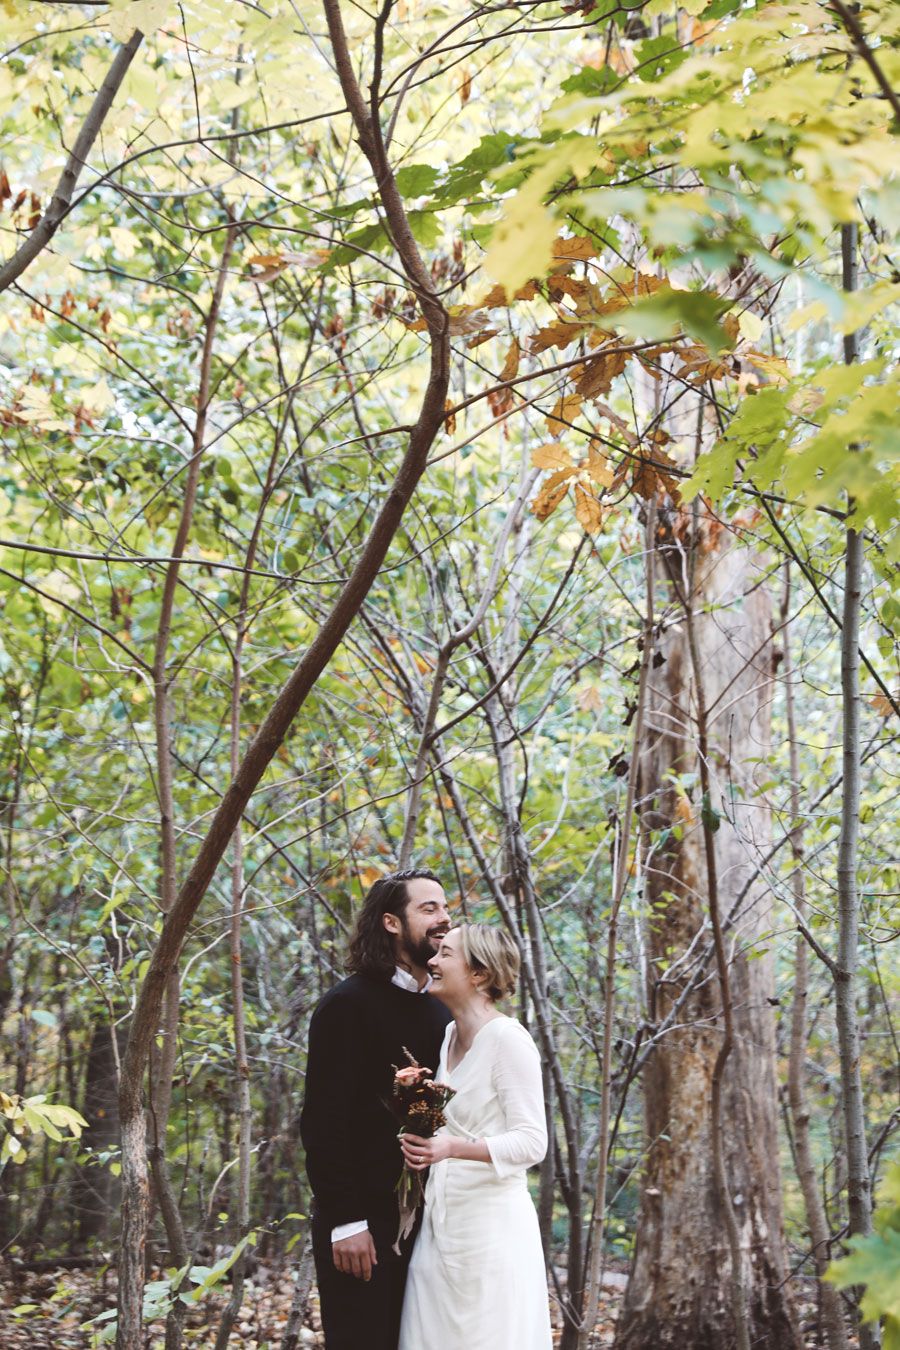 Intimate Central Park elopement